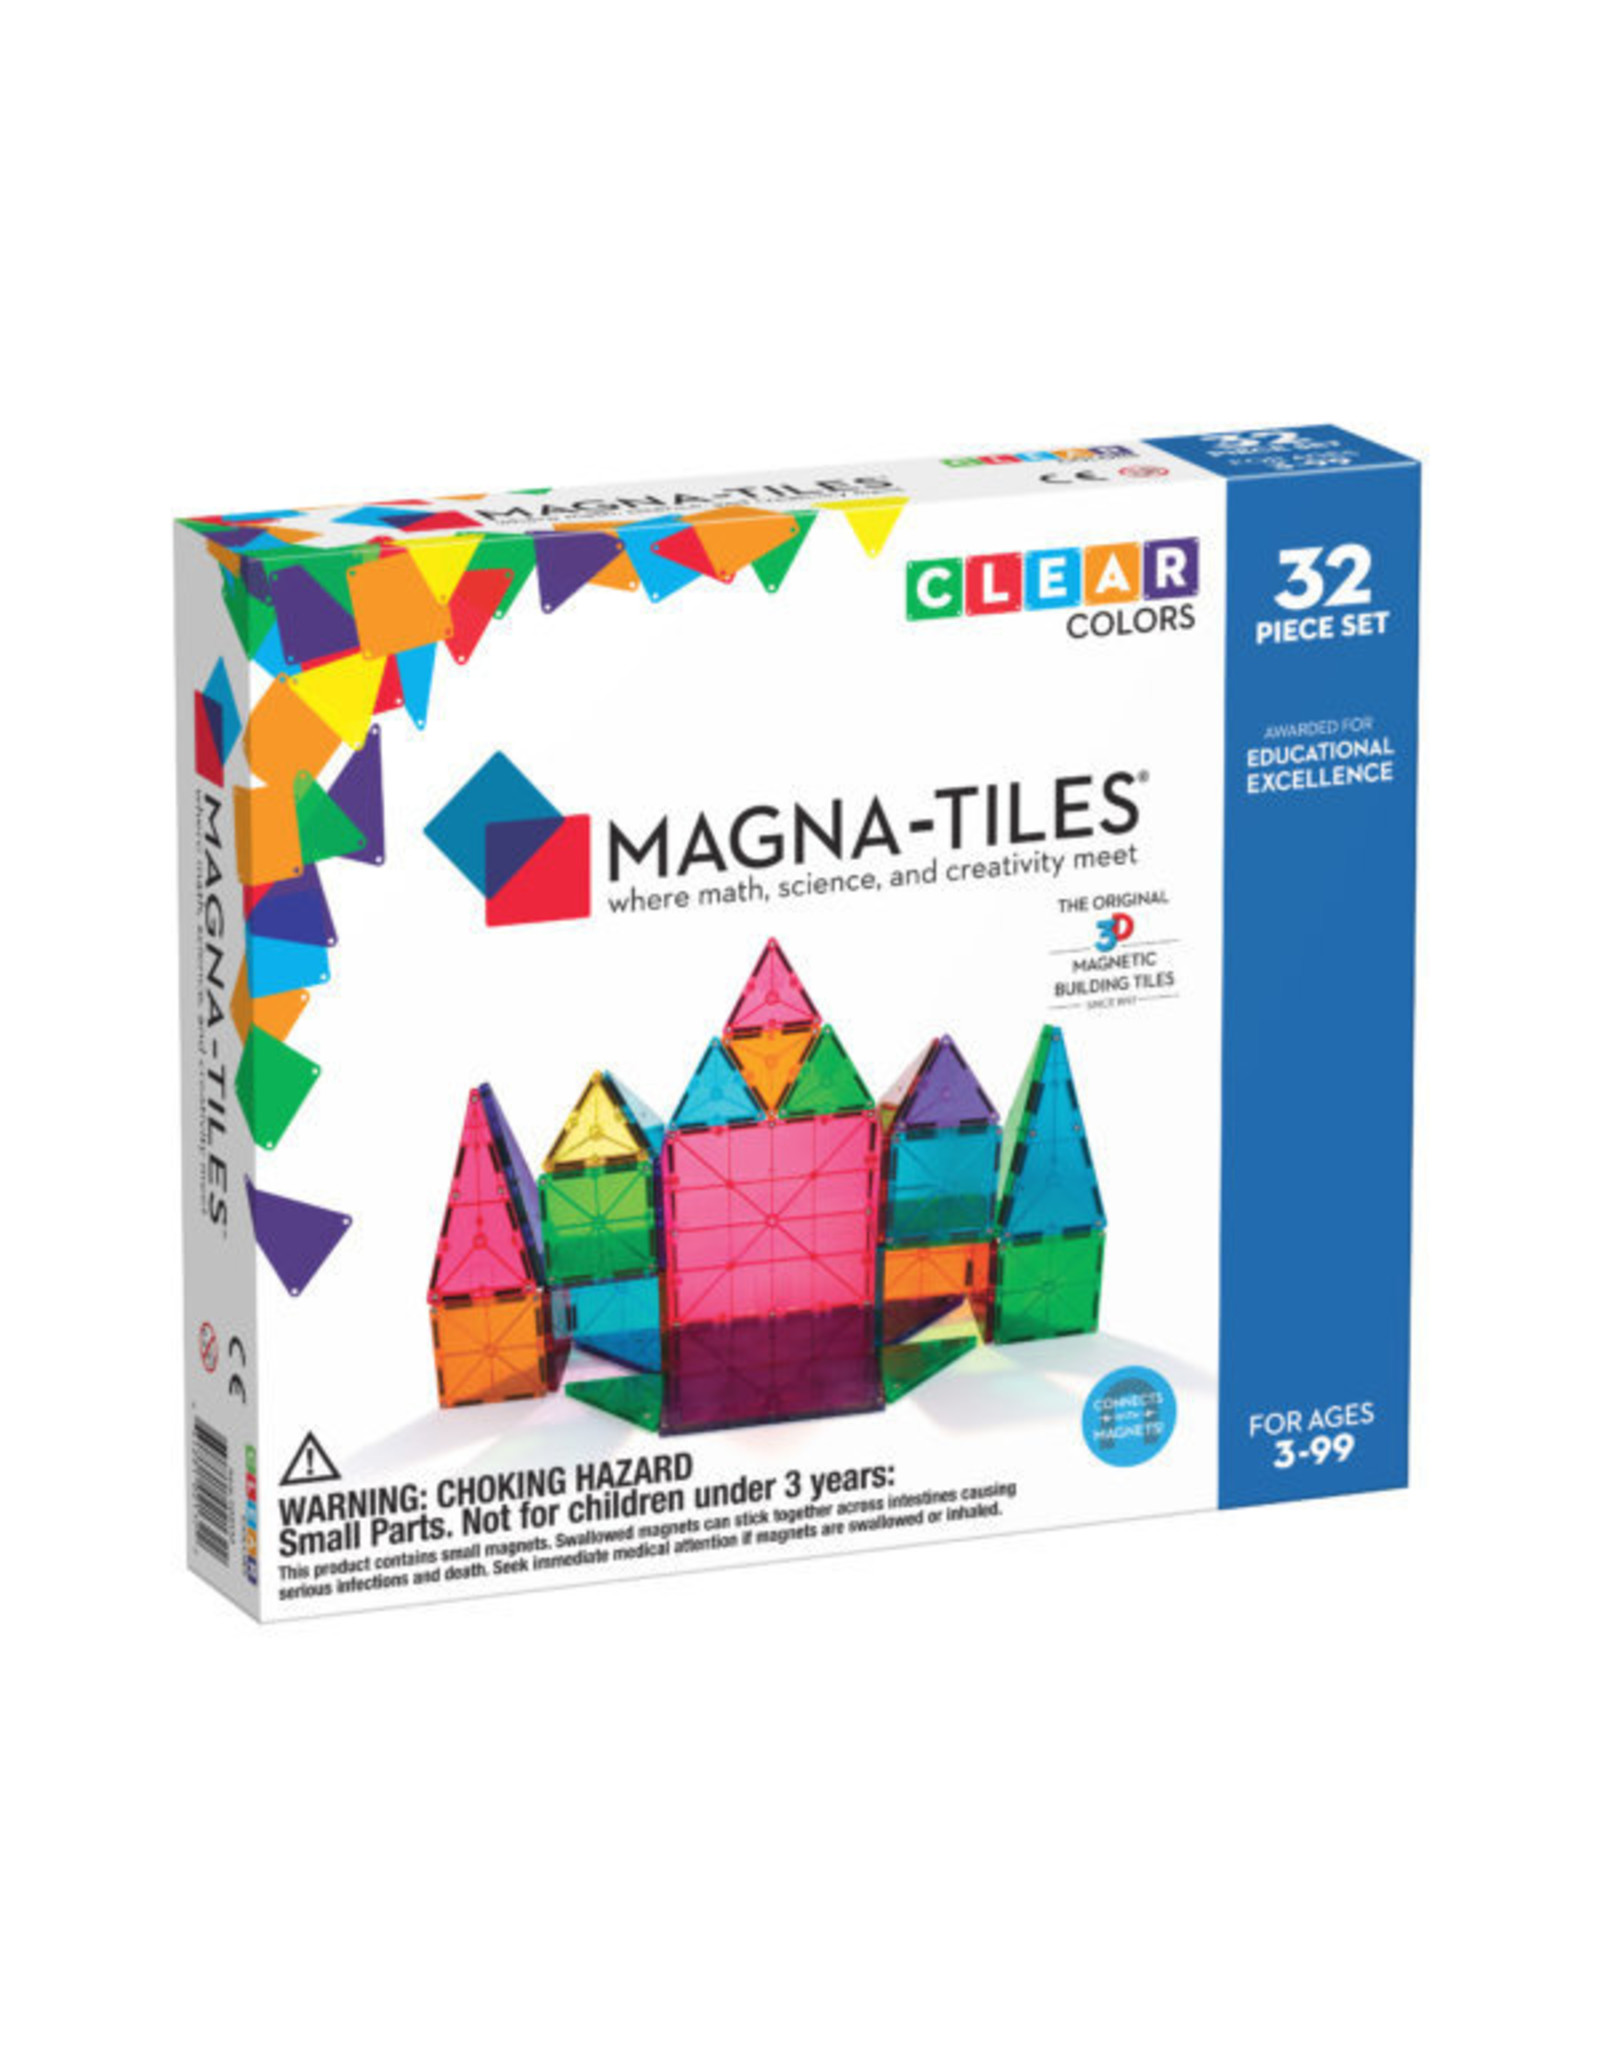 MagnaTiles Clear Colors 32 pc